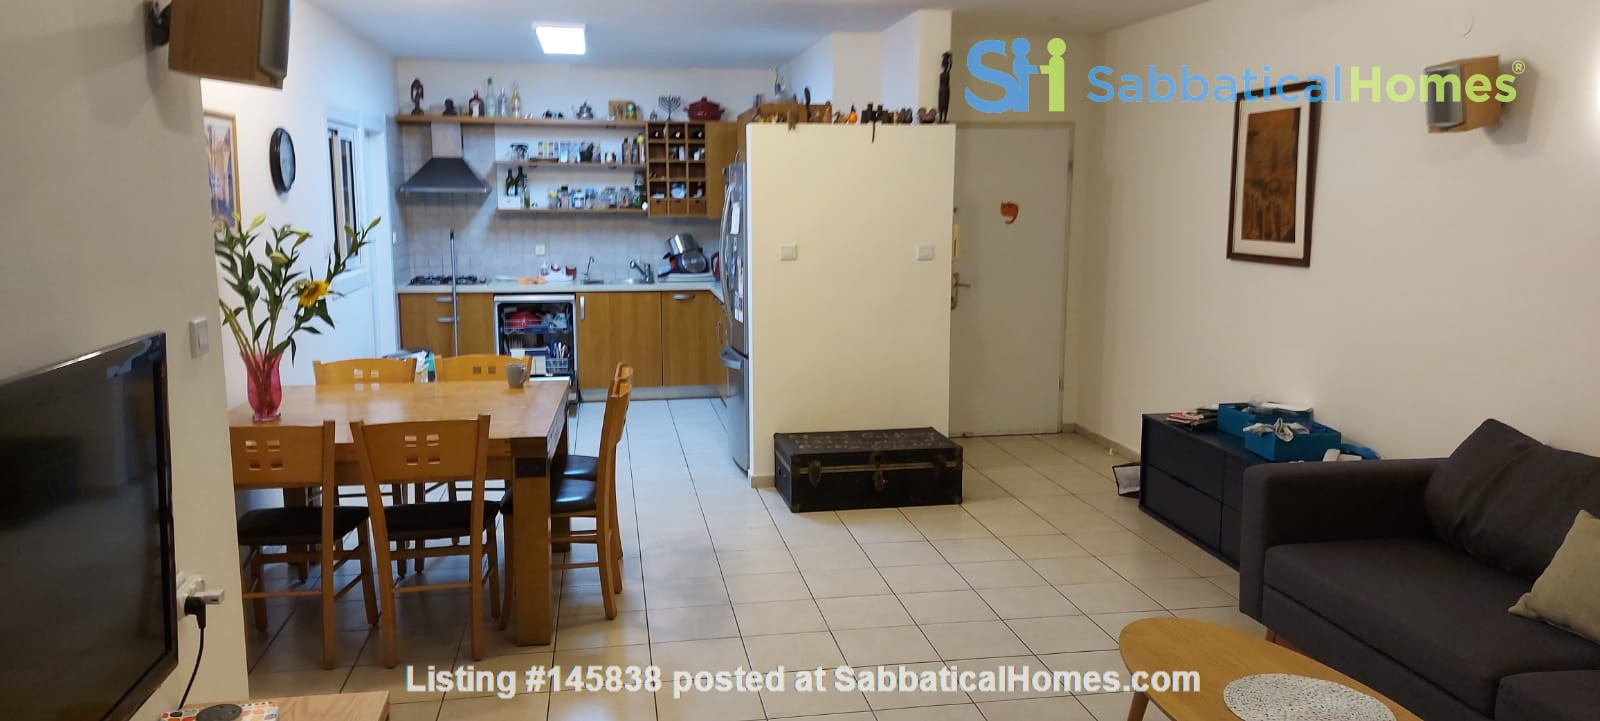 Looking for a two-bedrooms apartment in Paris Home Exchange in Ness Ziona 3